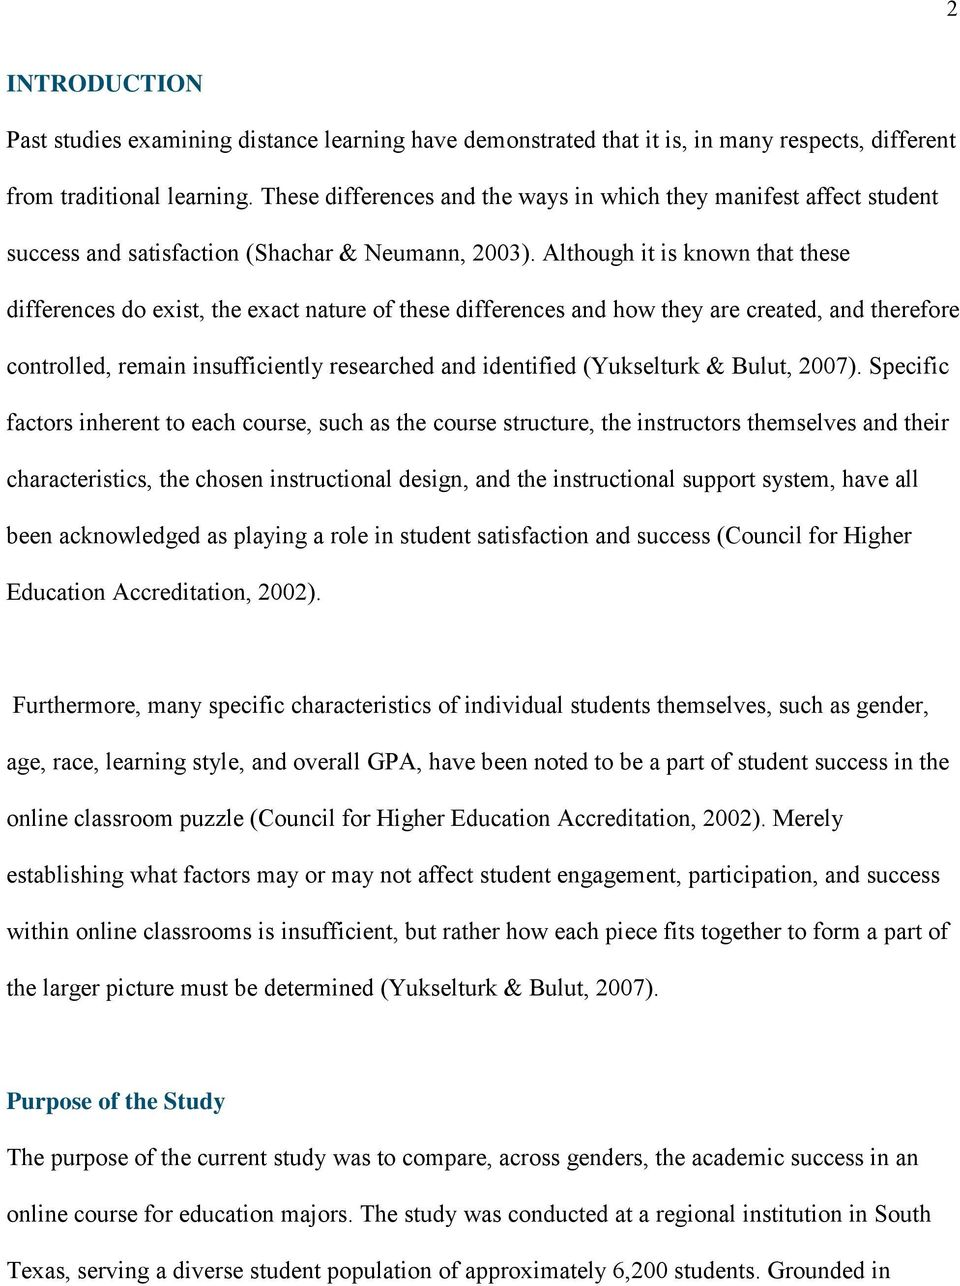 The Relationship between Gender and Academic Success Online - PDF